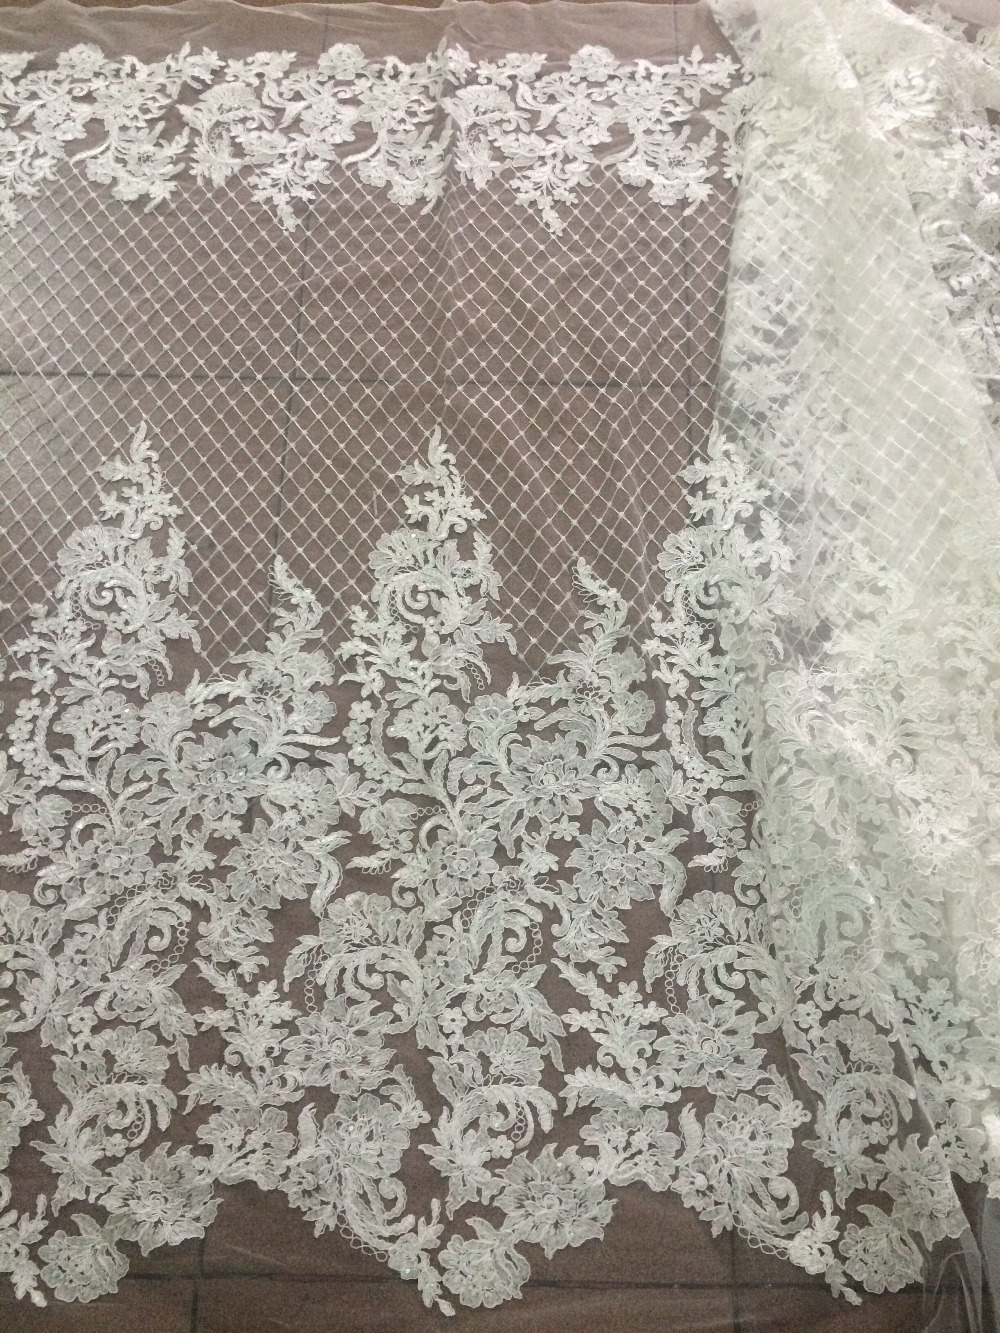 Fashion embroidered In Switzerland New Arrival LJY 6910 African Cord Net Lace Fabric with sequins for wedding-in Lace from Home & Garden    2